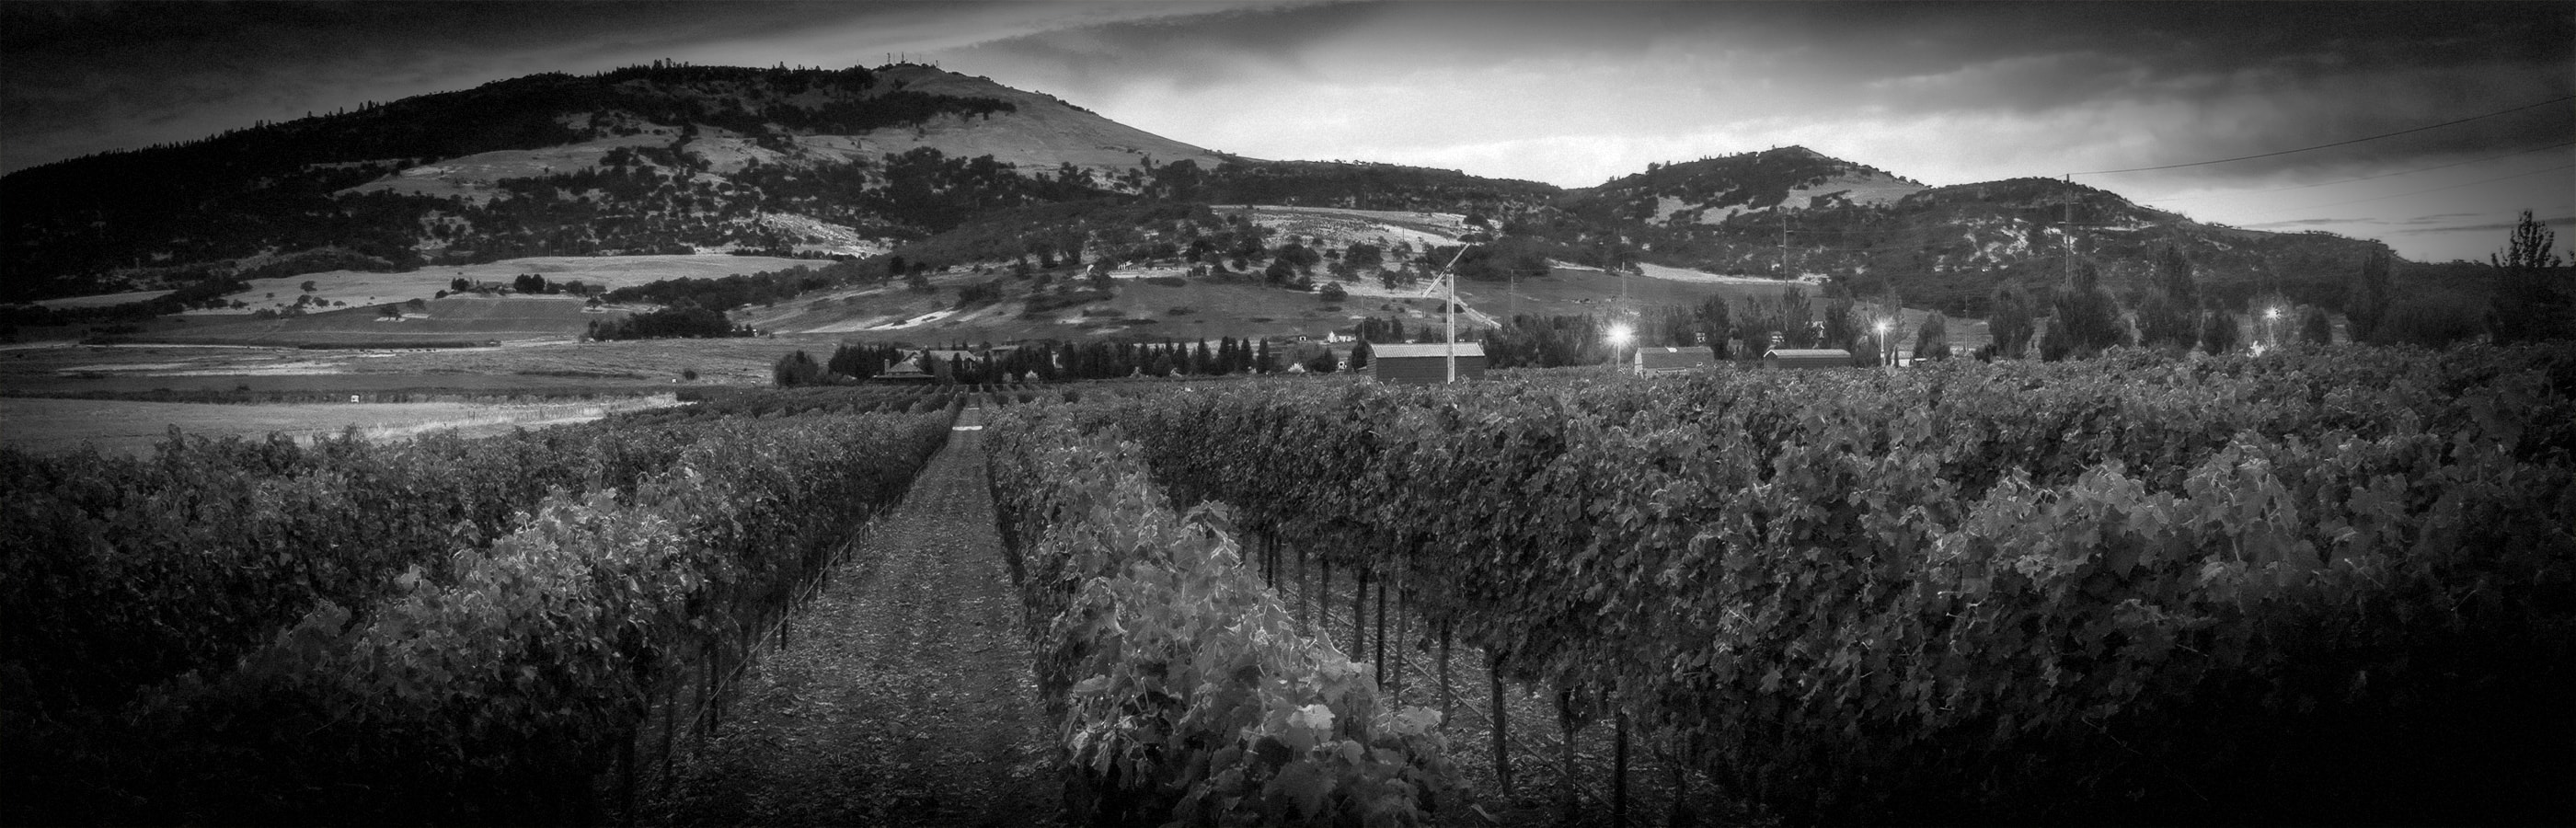 2Hawk Vineyard and Winery Vineyard at Sunset (Grayscale)